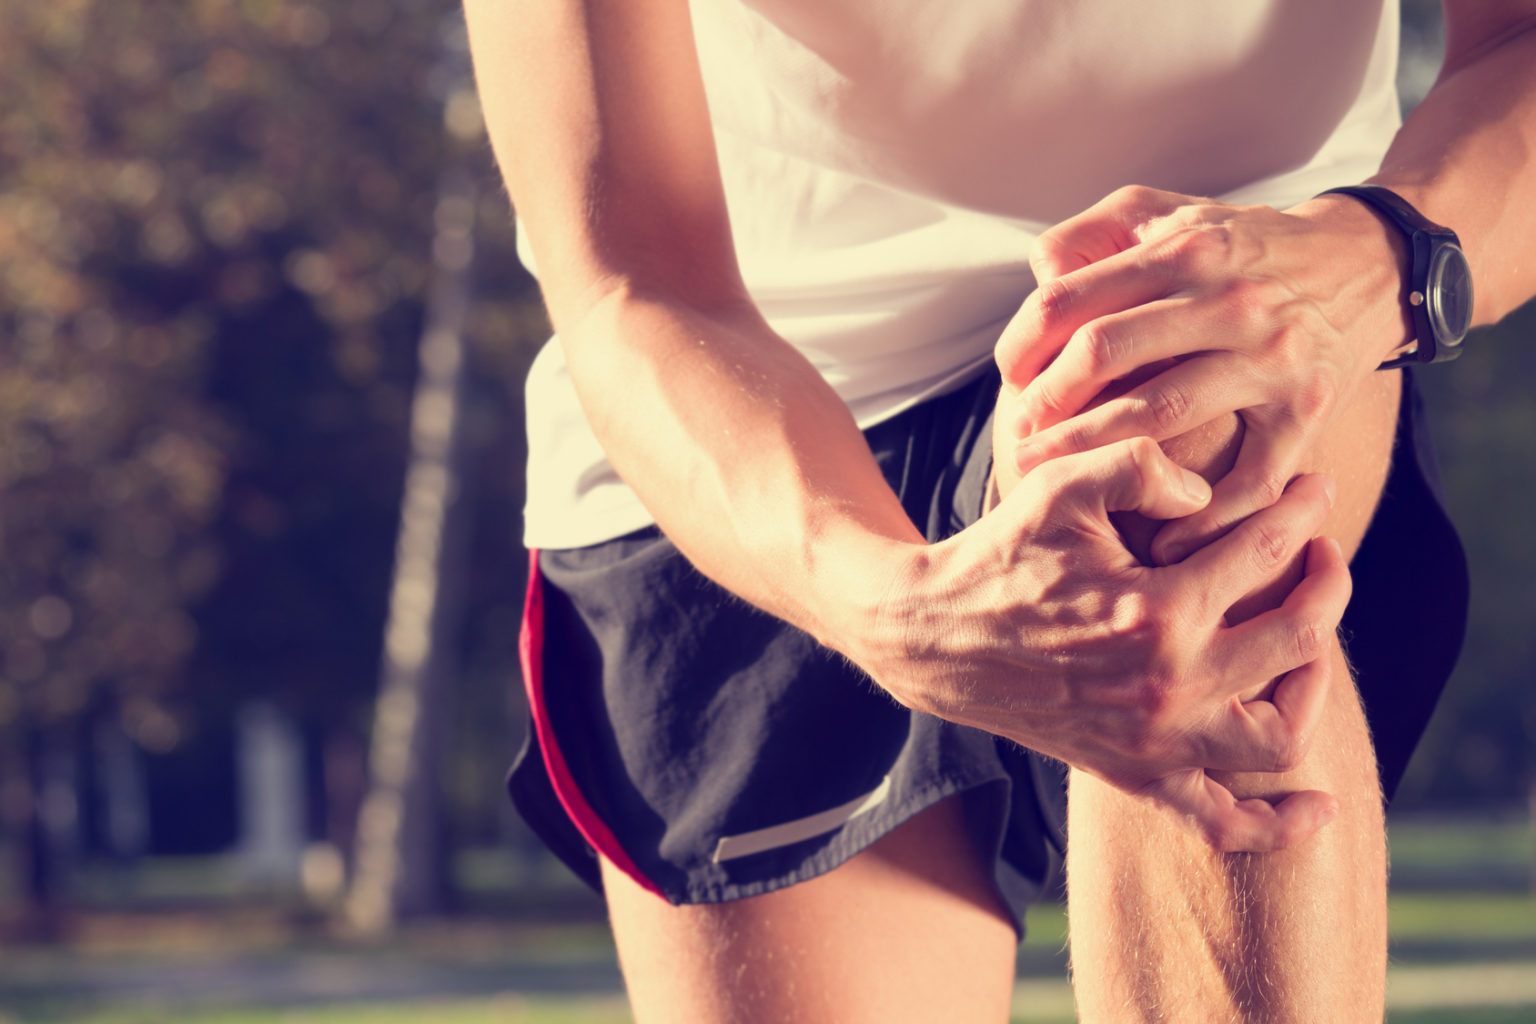 Knee Pain, And When You Should Contact Your Doctor